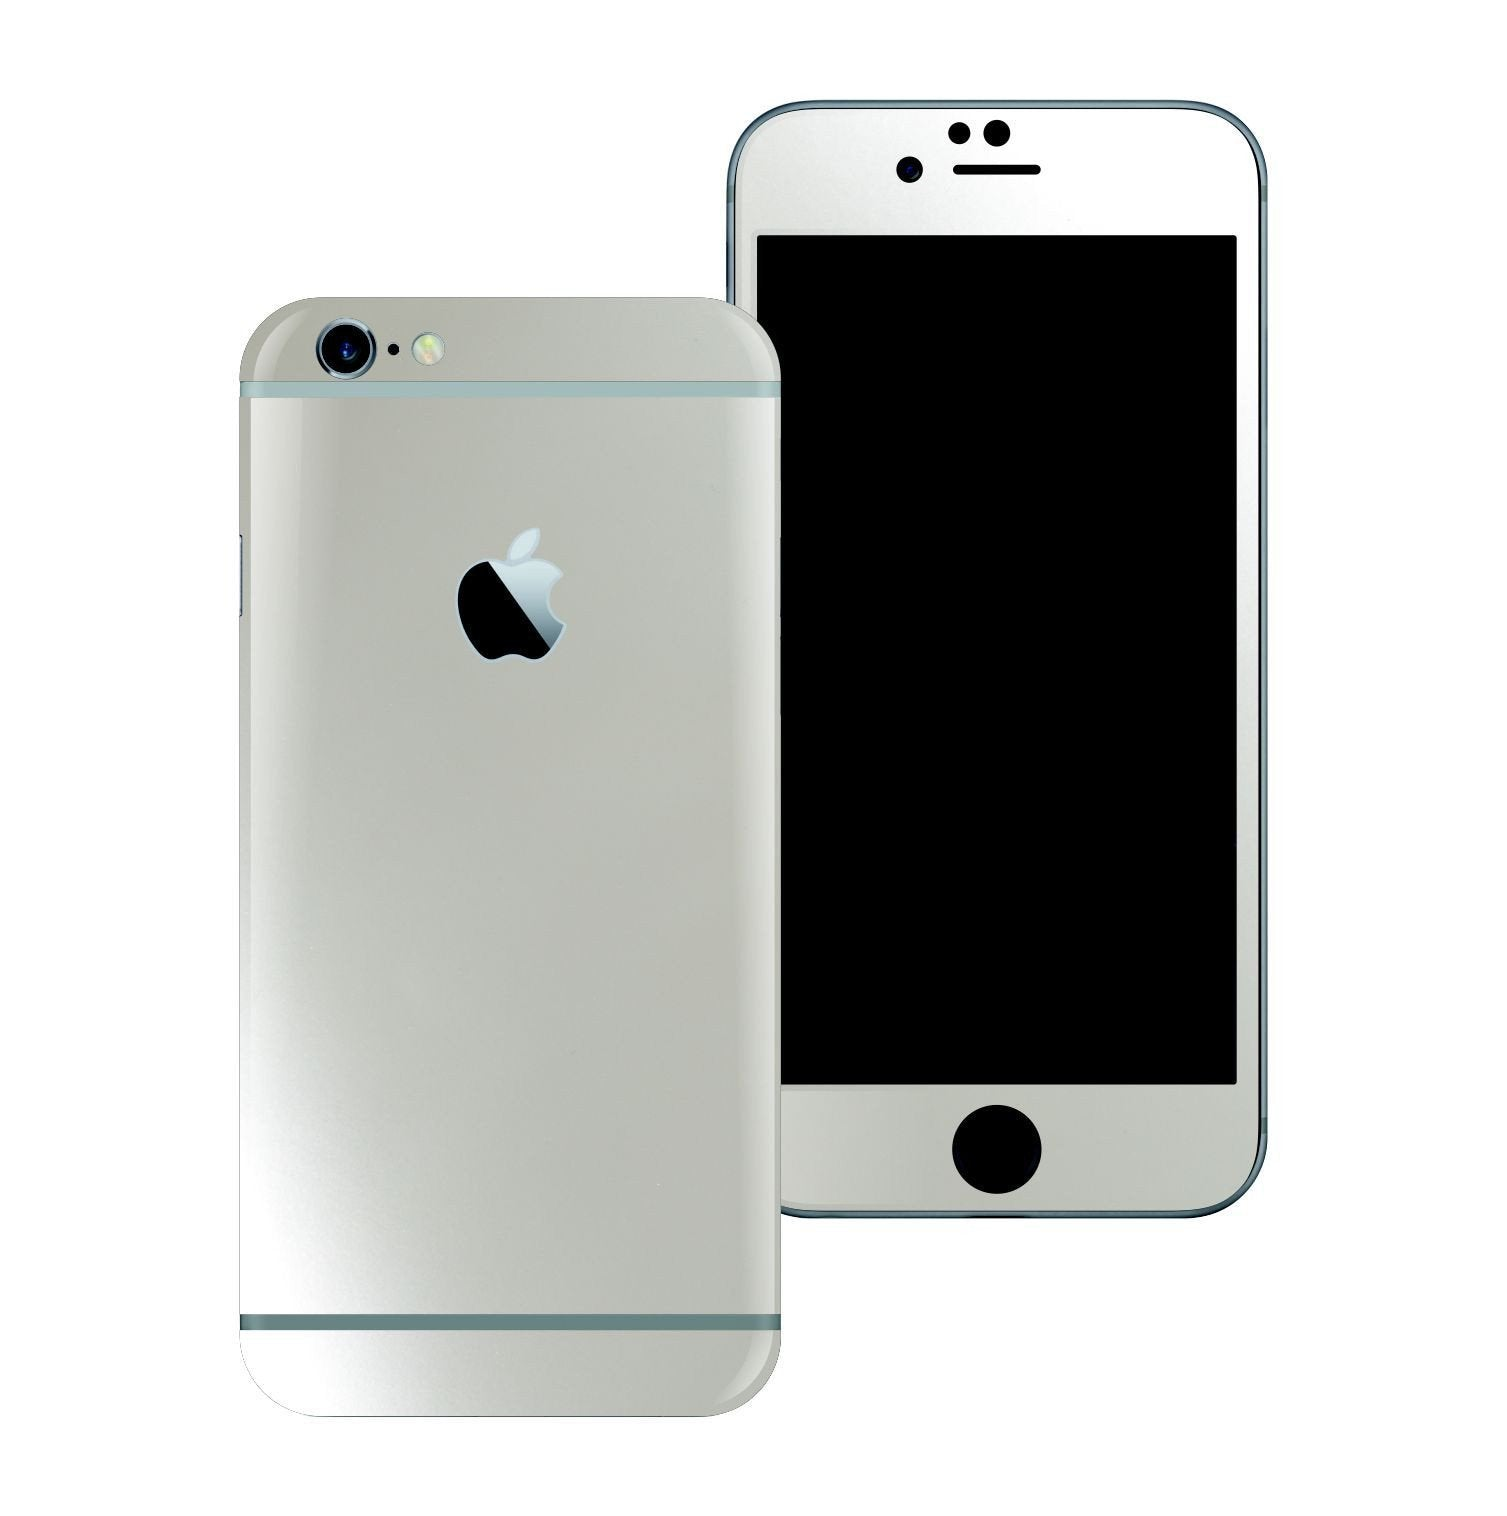 iPhone 6 3M Satin Pearl White Skin Wrap Sticker Cover Protector Decal by EasySkinz